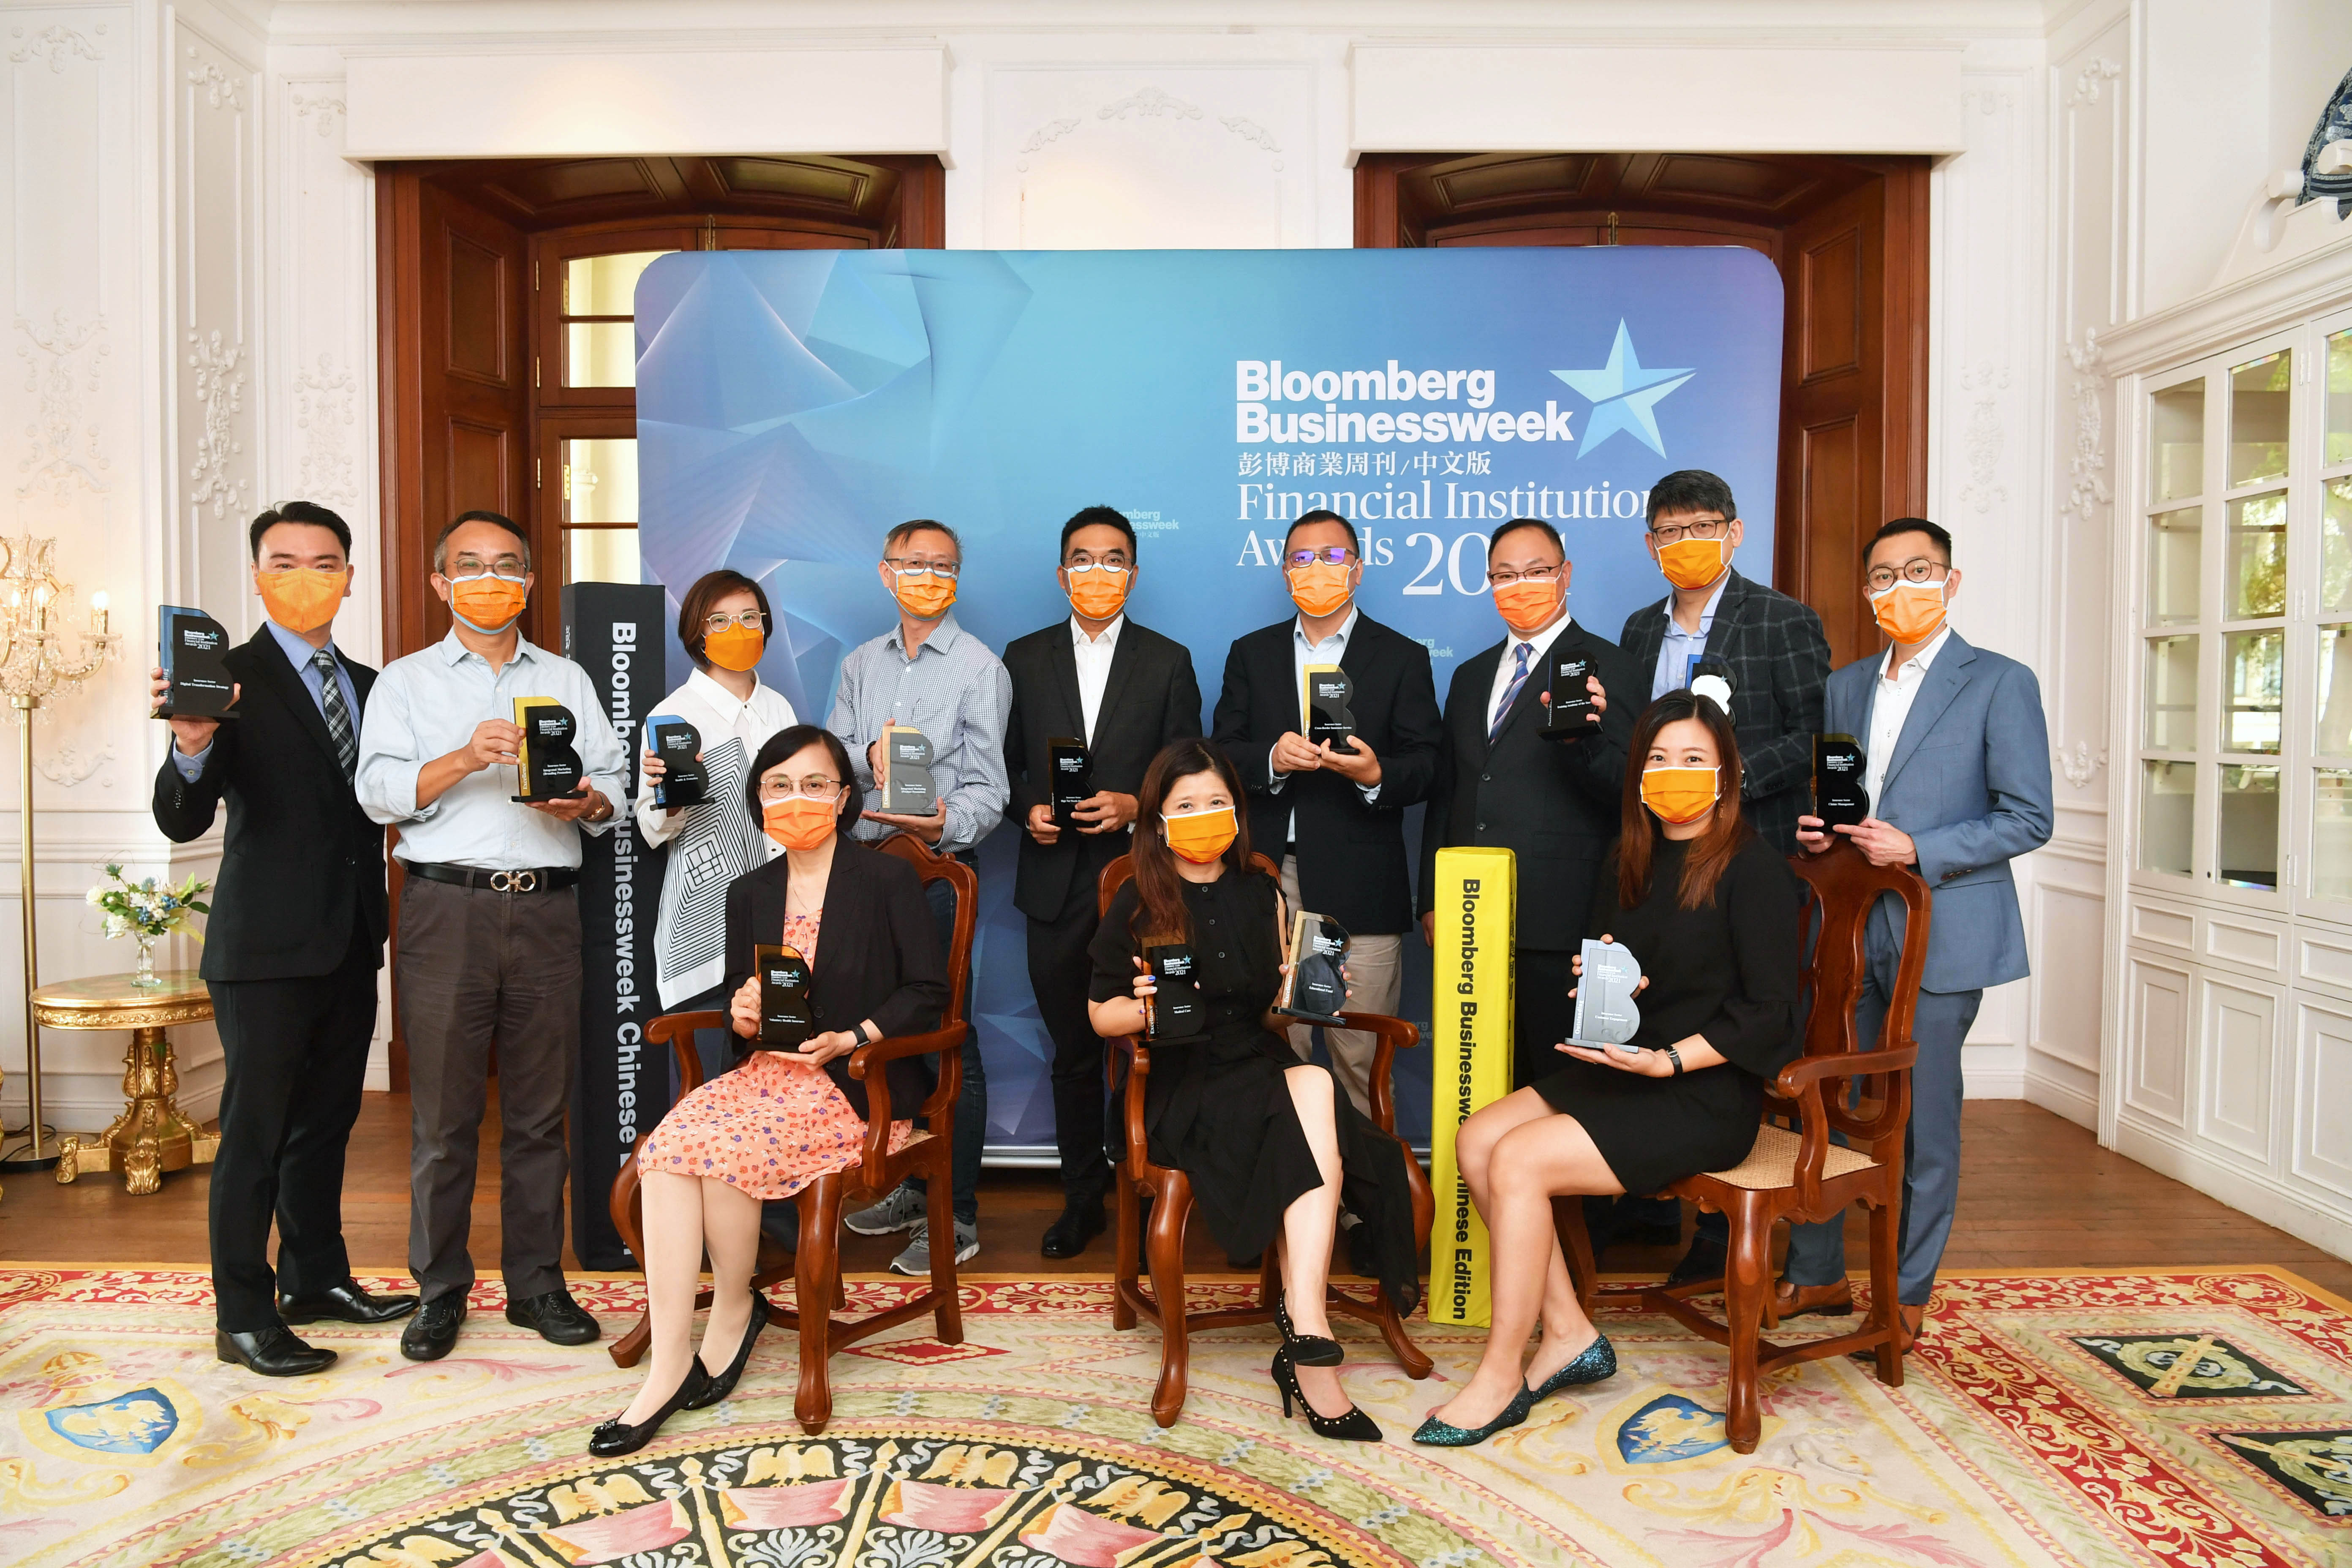 FWD pulls off record tally at Bloomberg Businessweek Financial Institution Awards 2021 with 13 wins